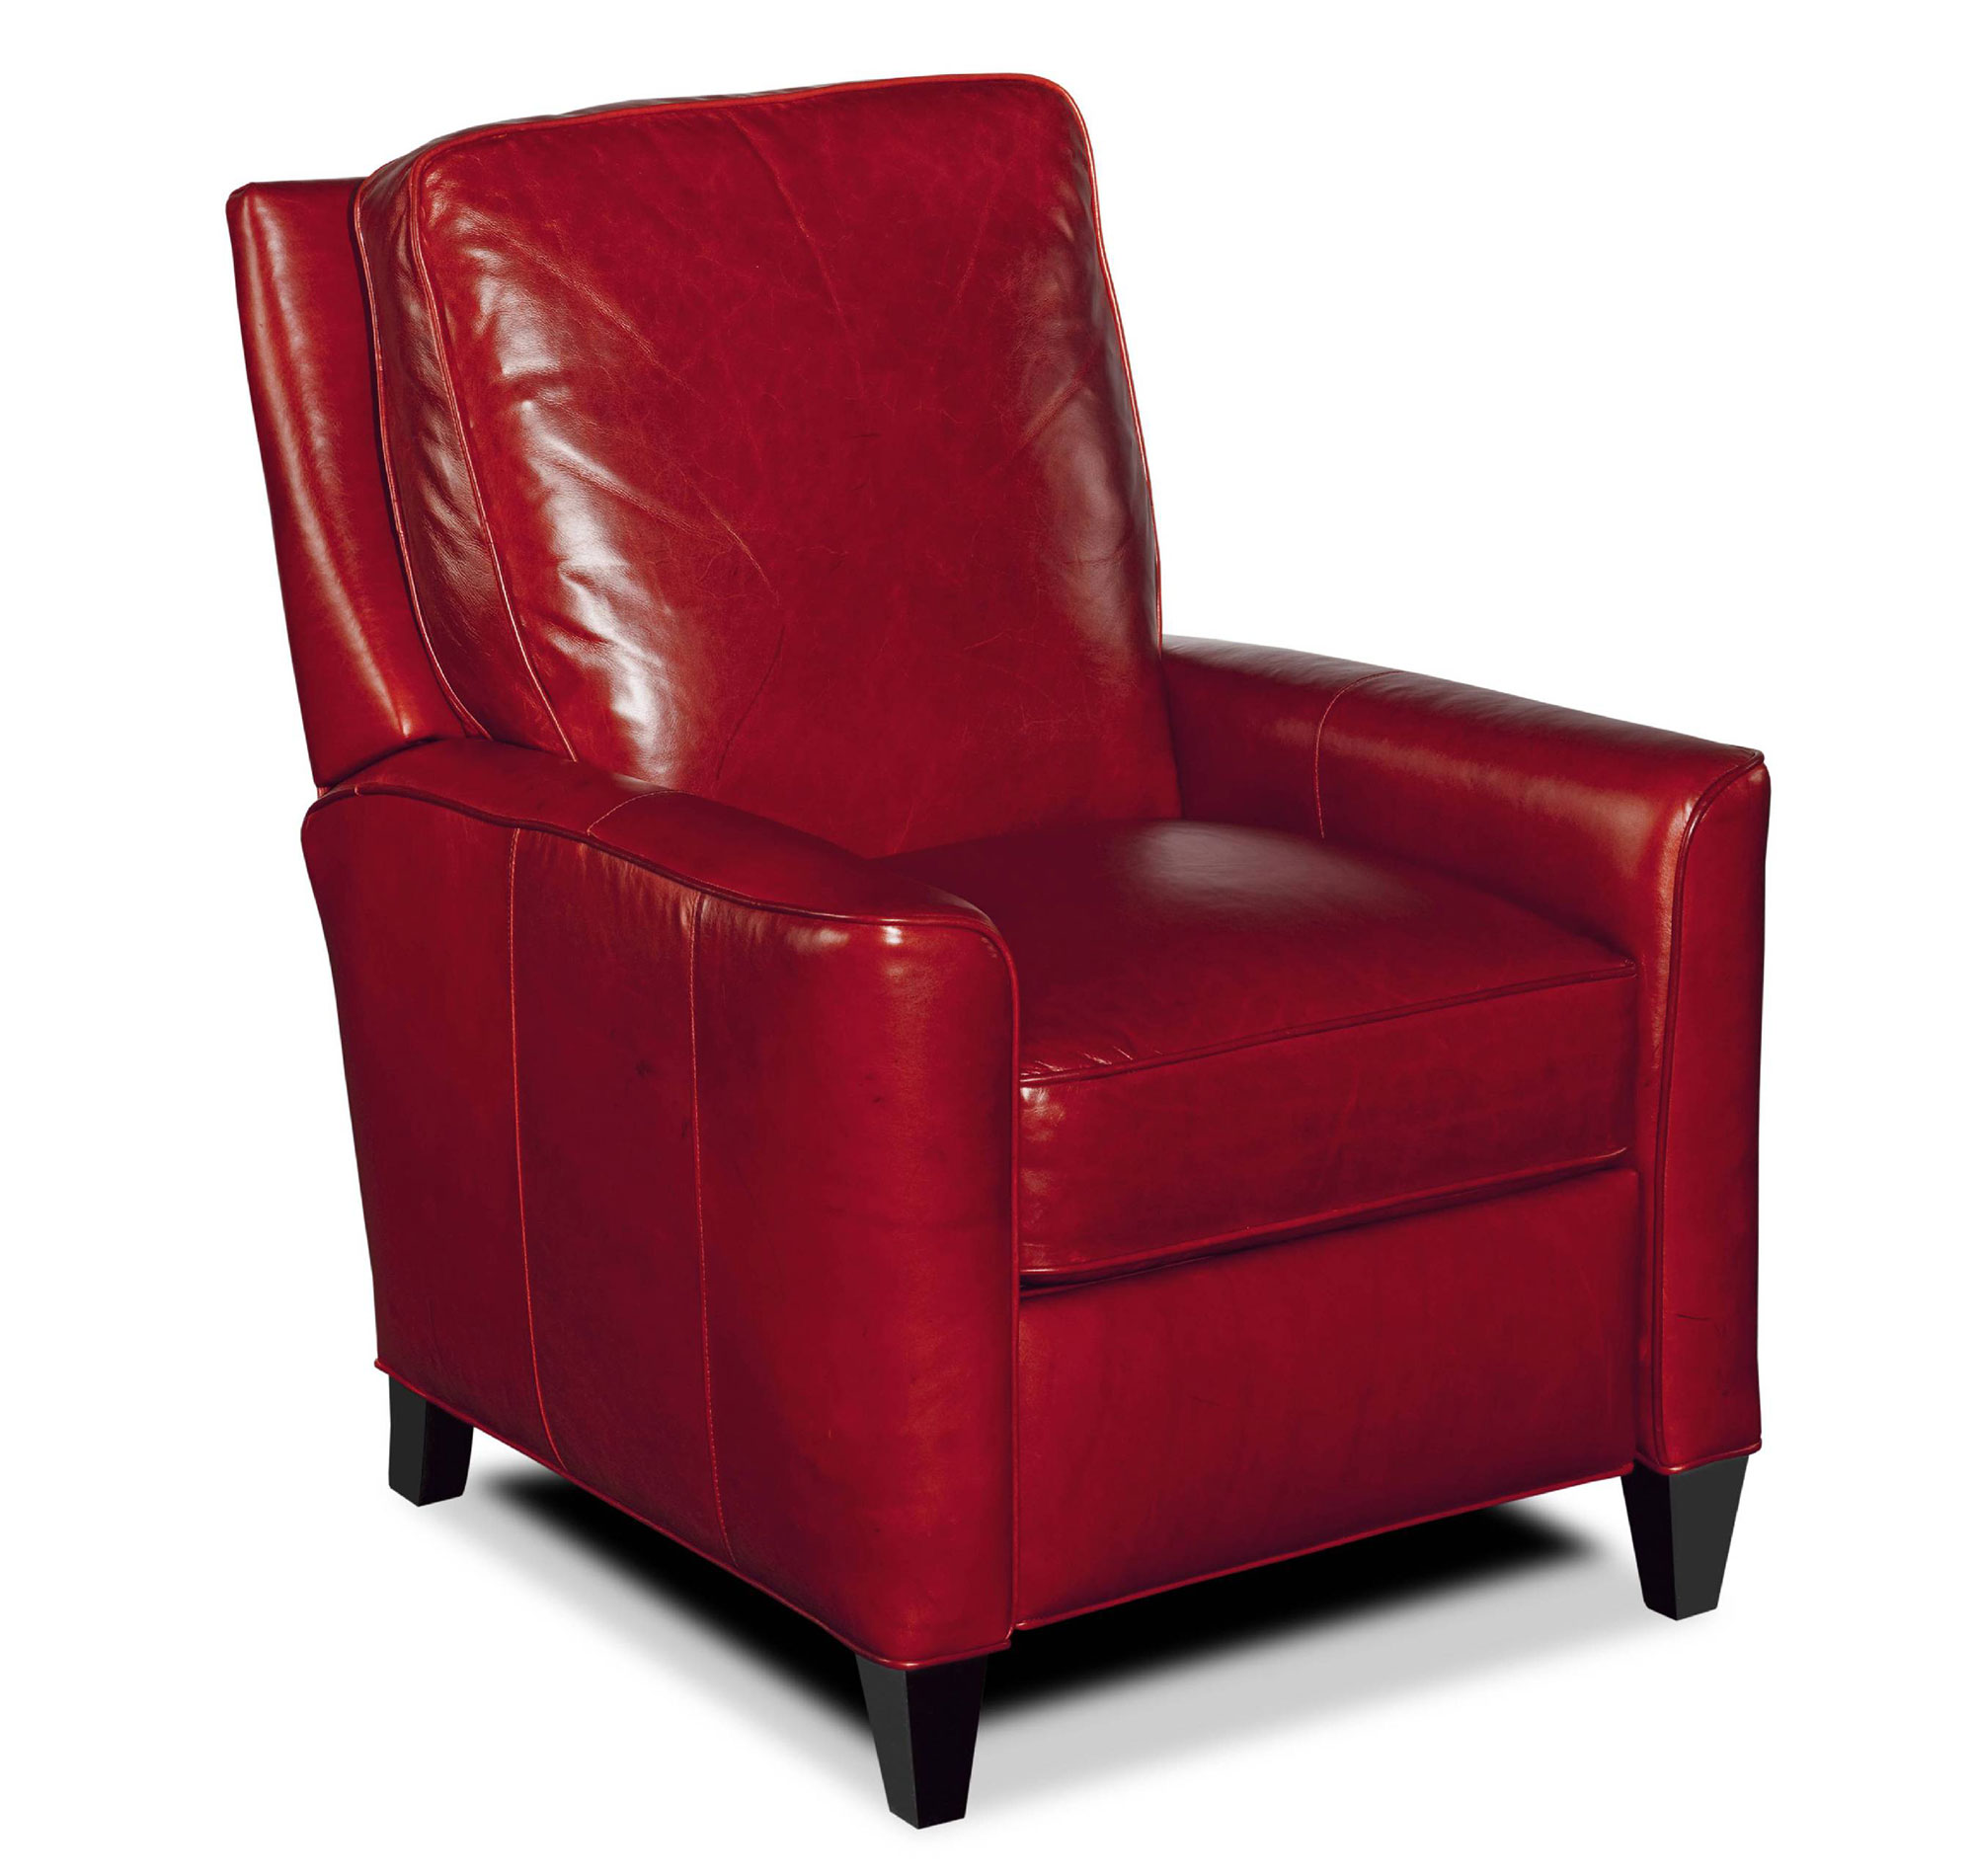 Bradington Young Recliner 252050